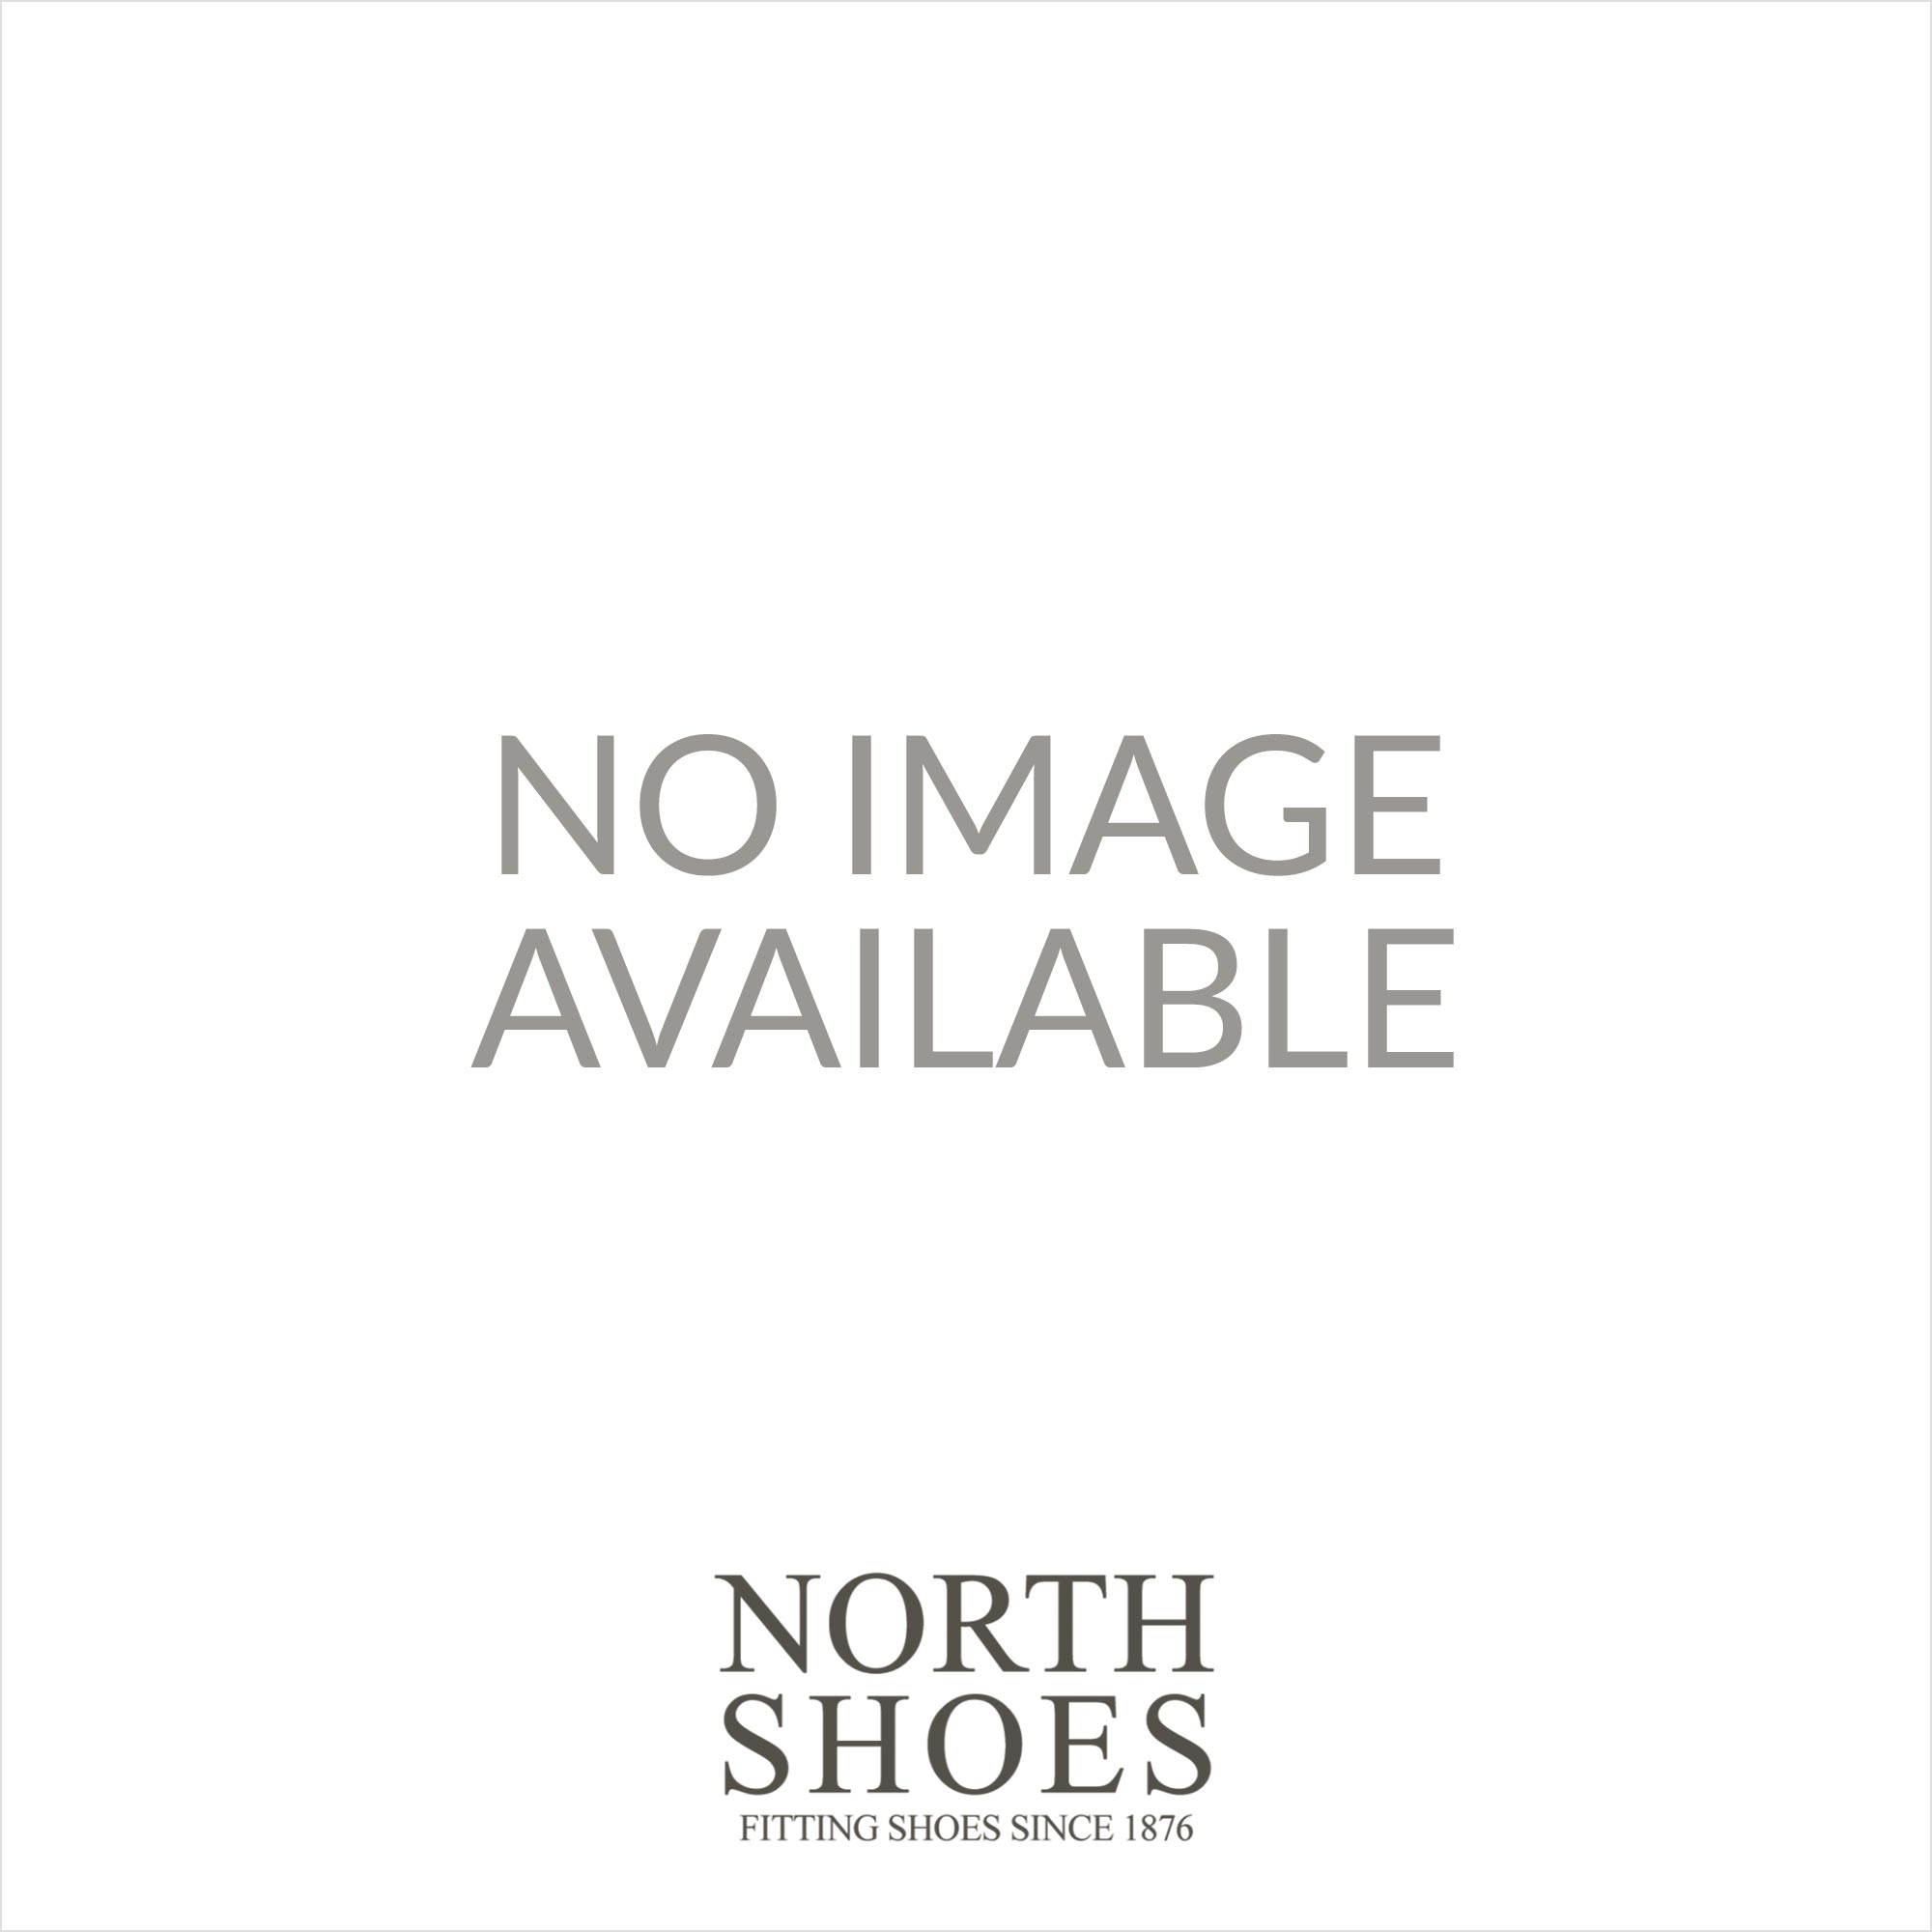 25a215ea96bd6 Fitflop Banda Slide Black Leather Womens Slip On Mule Sandal - Fitflop from  North Shoes UK